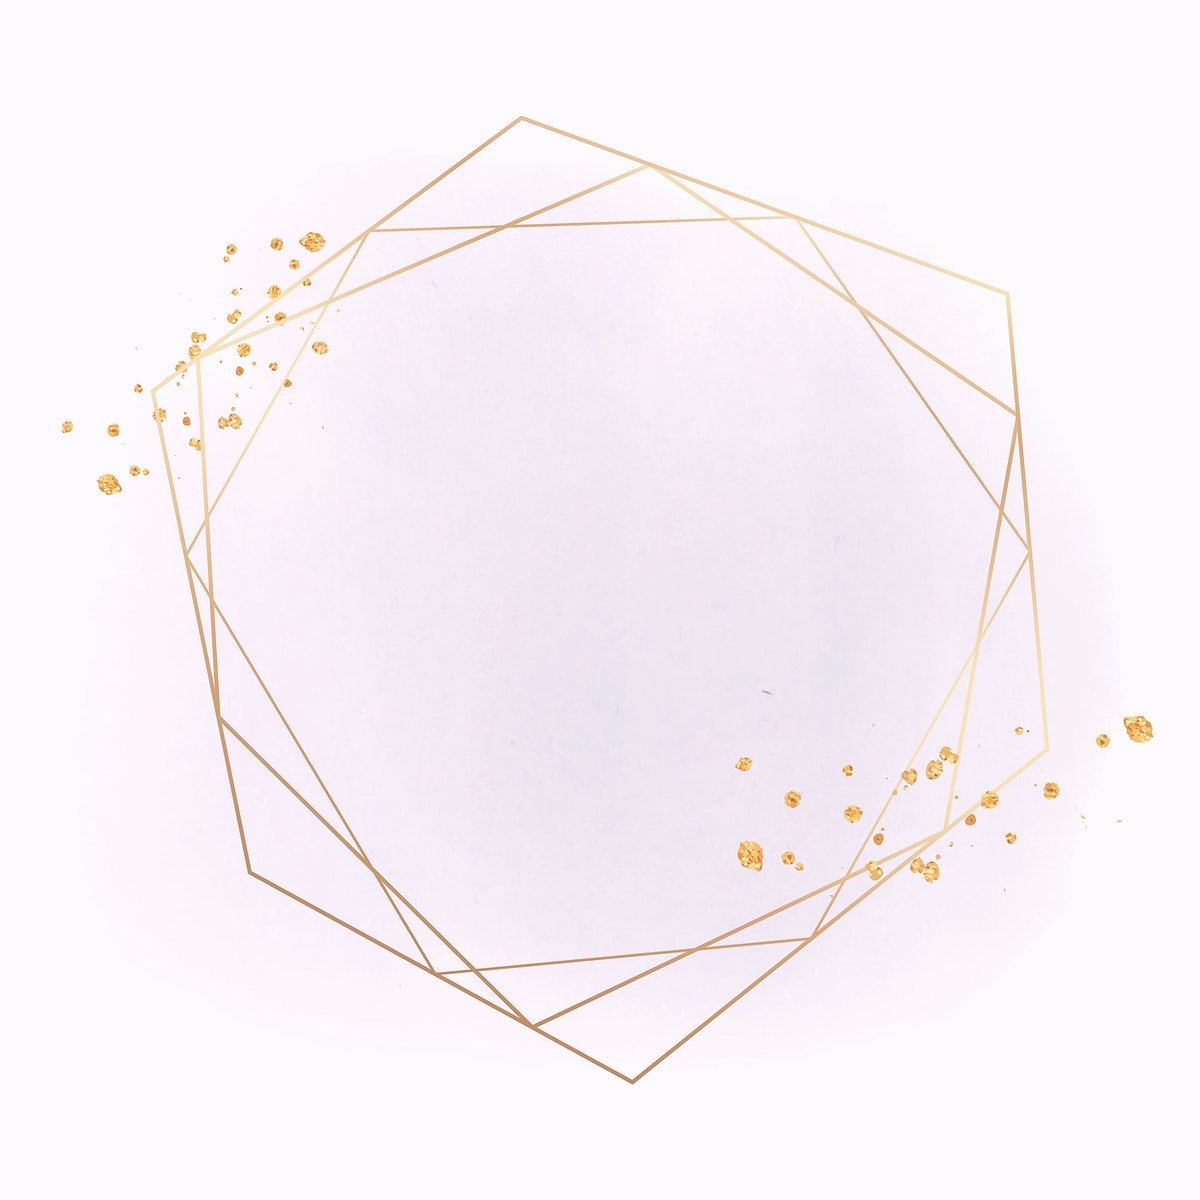 Gold geometric frame on a pink background vector